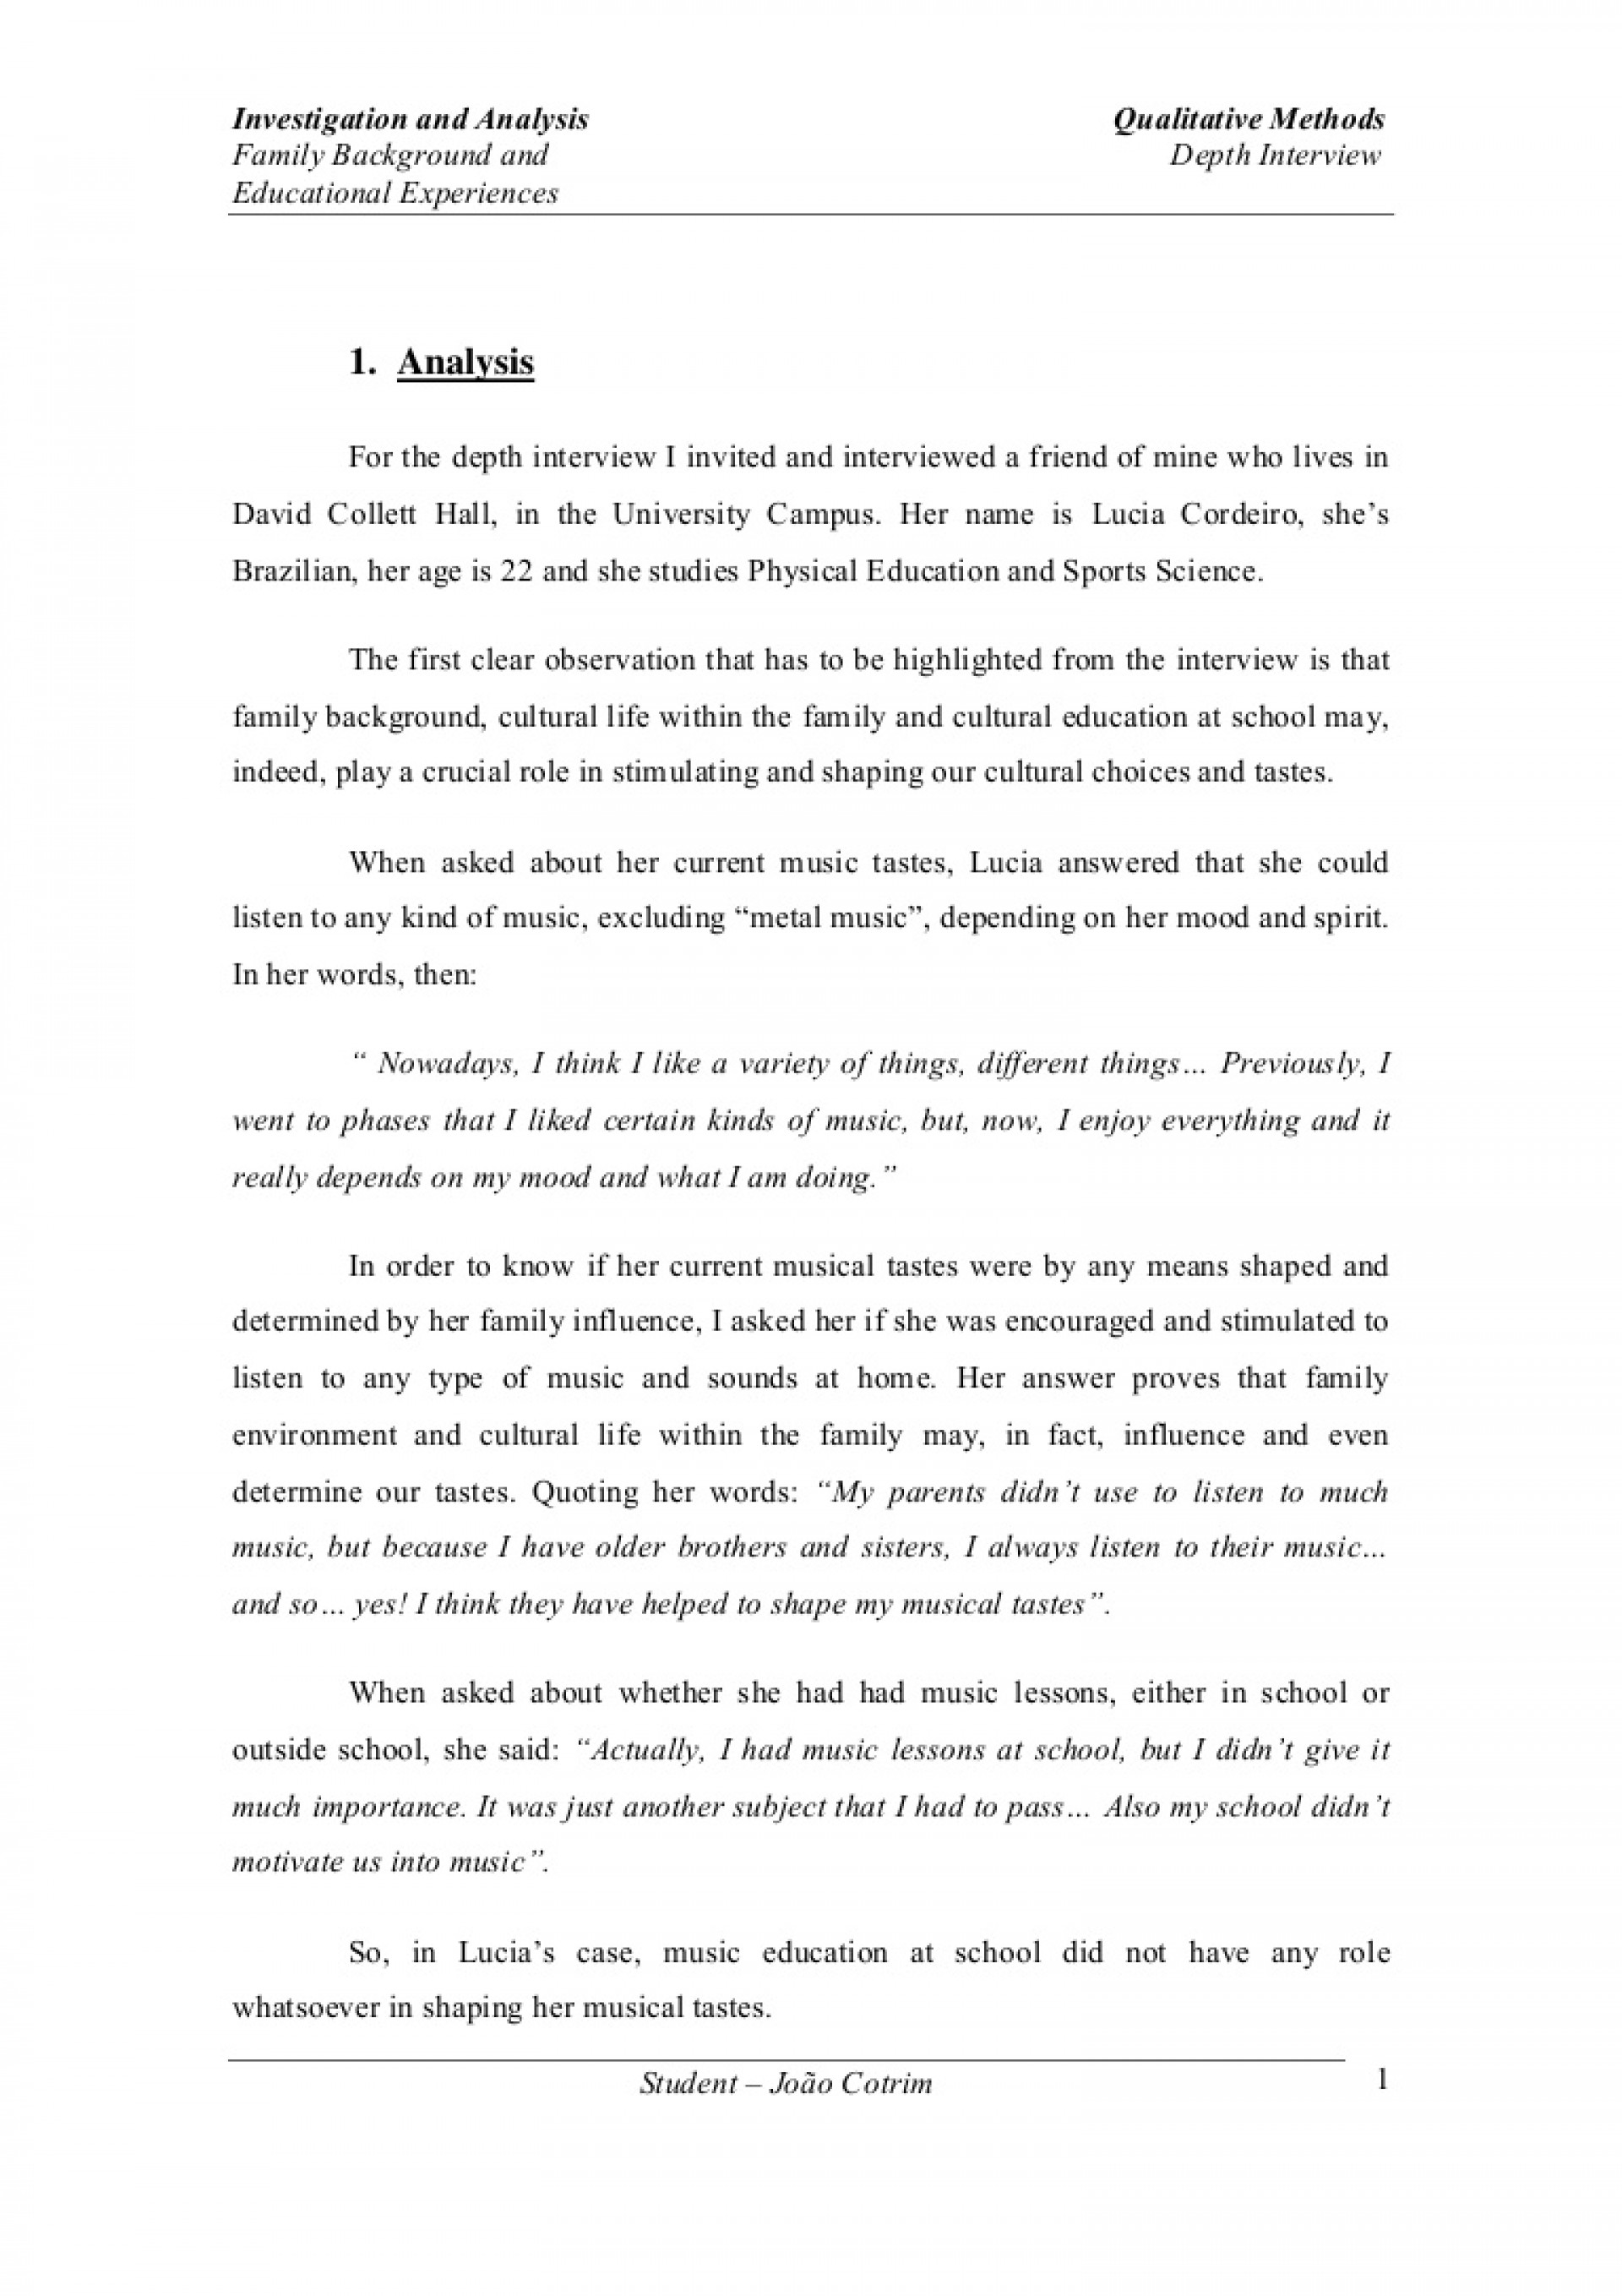 012 Examples Of Essay About Myself Depthinterview Phpapp01 Thumbnail Best Essays On Self Awareness Writing Yourself For College 1920